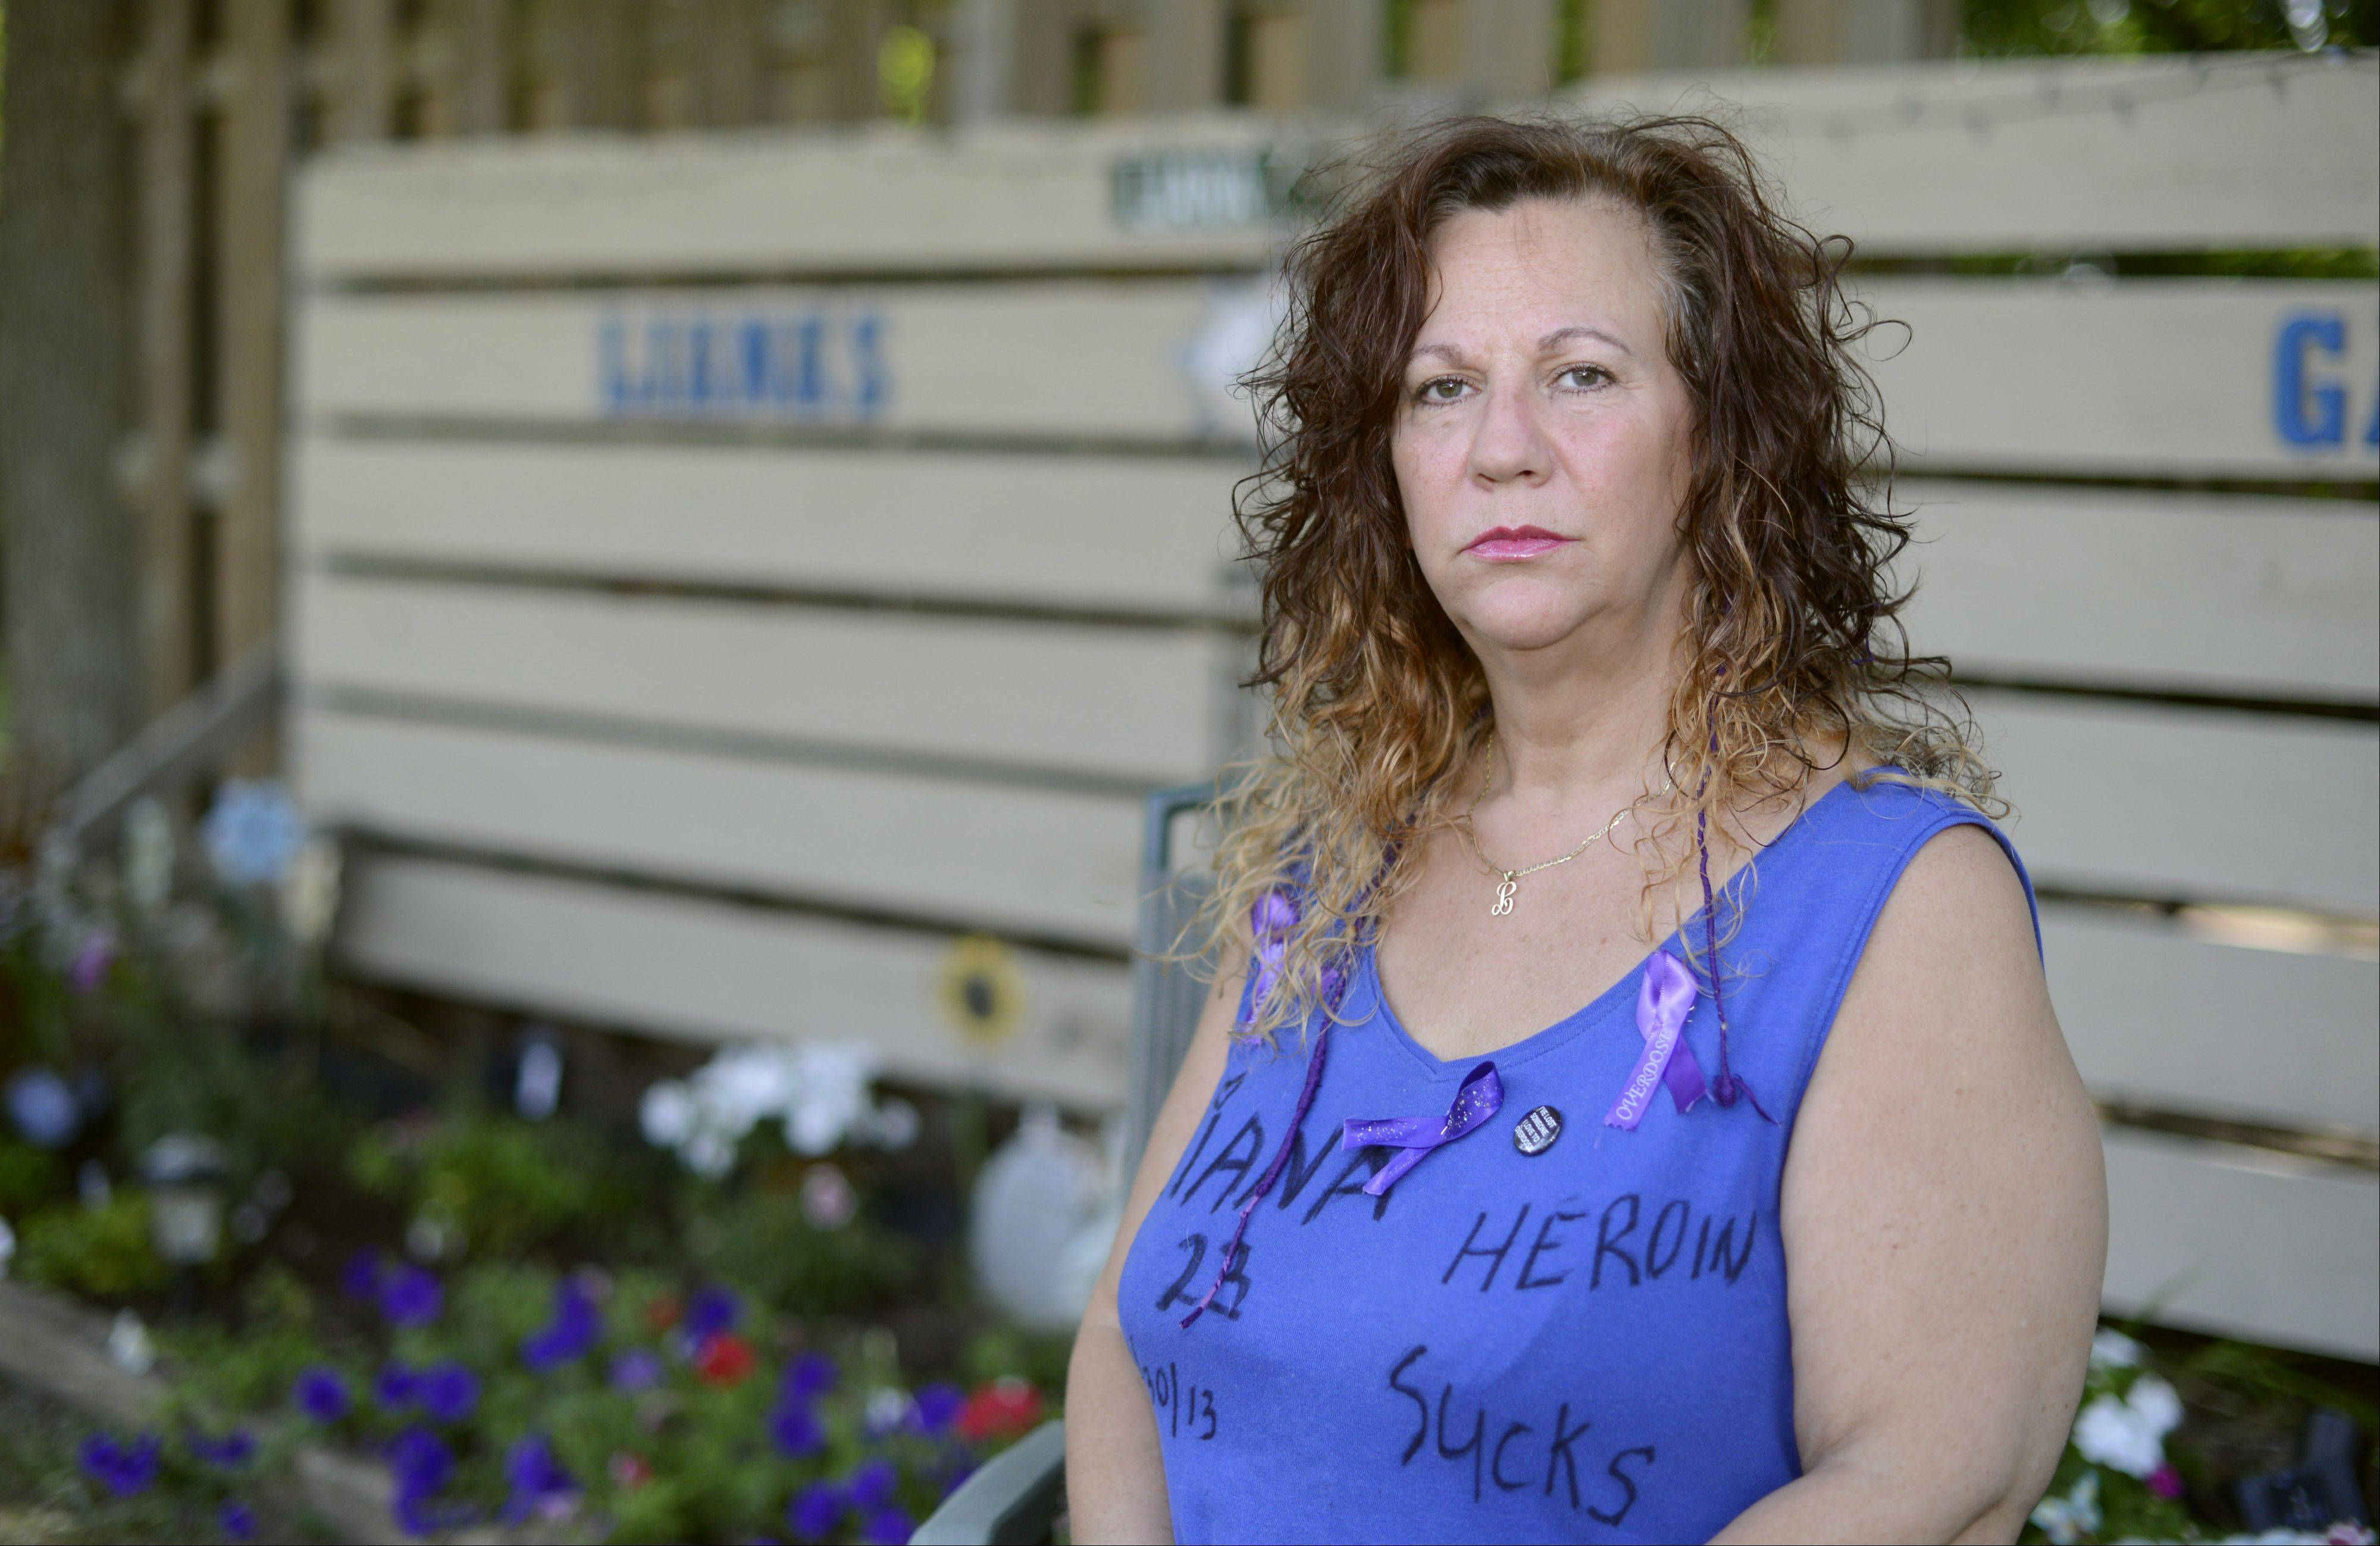 Tanya Childs of Elgin is organizing a rally Saturday in Elgin for International Drug Overdose Awareness Day. Childs lost her 23-year-old daughter, Liana, to what she is sure was a heroin overdose in April. Her front yard now has a garden in Liana�s memory, to which people continually add flowers, plants and decorations.